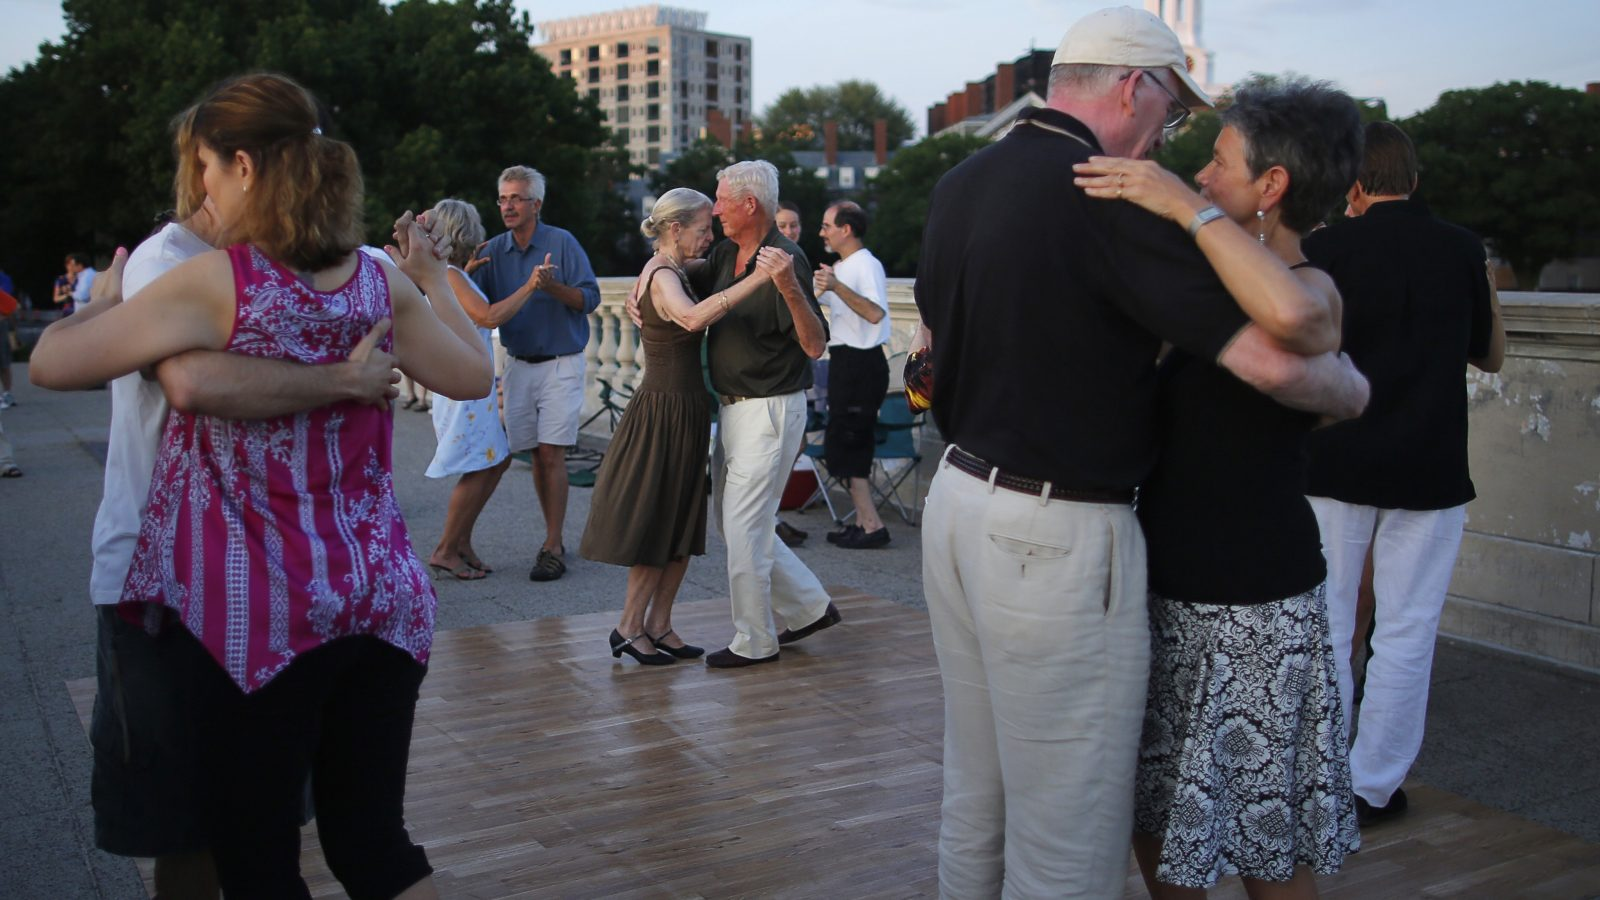 Couples, including Ellen and Larry Walsh (C), dance during one of the Tango Society of Boston's Tango by Moonlight evenings on the Weeks Footbridge over the Charles River in Cambridge, Massachusetts July 6, 2013.  This is the society's 17th Tango by Moonlight season.    REUTERS/Brian Snyder  (UNITED STATES - Tags: SOCIETY) - RTX11FAG